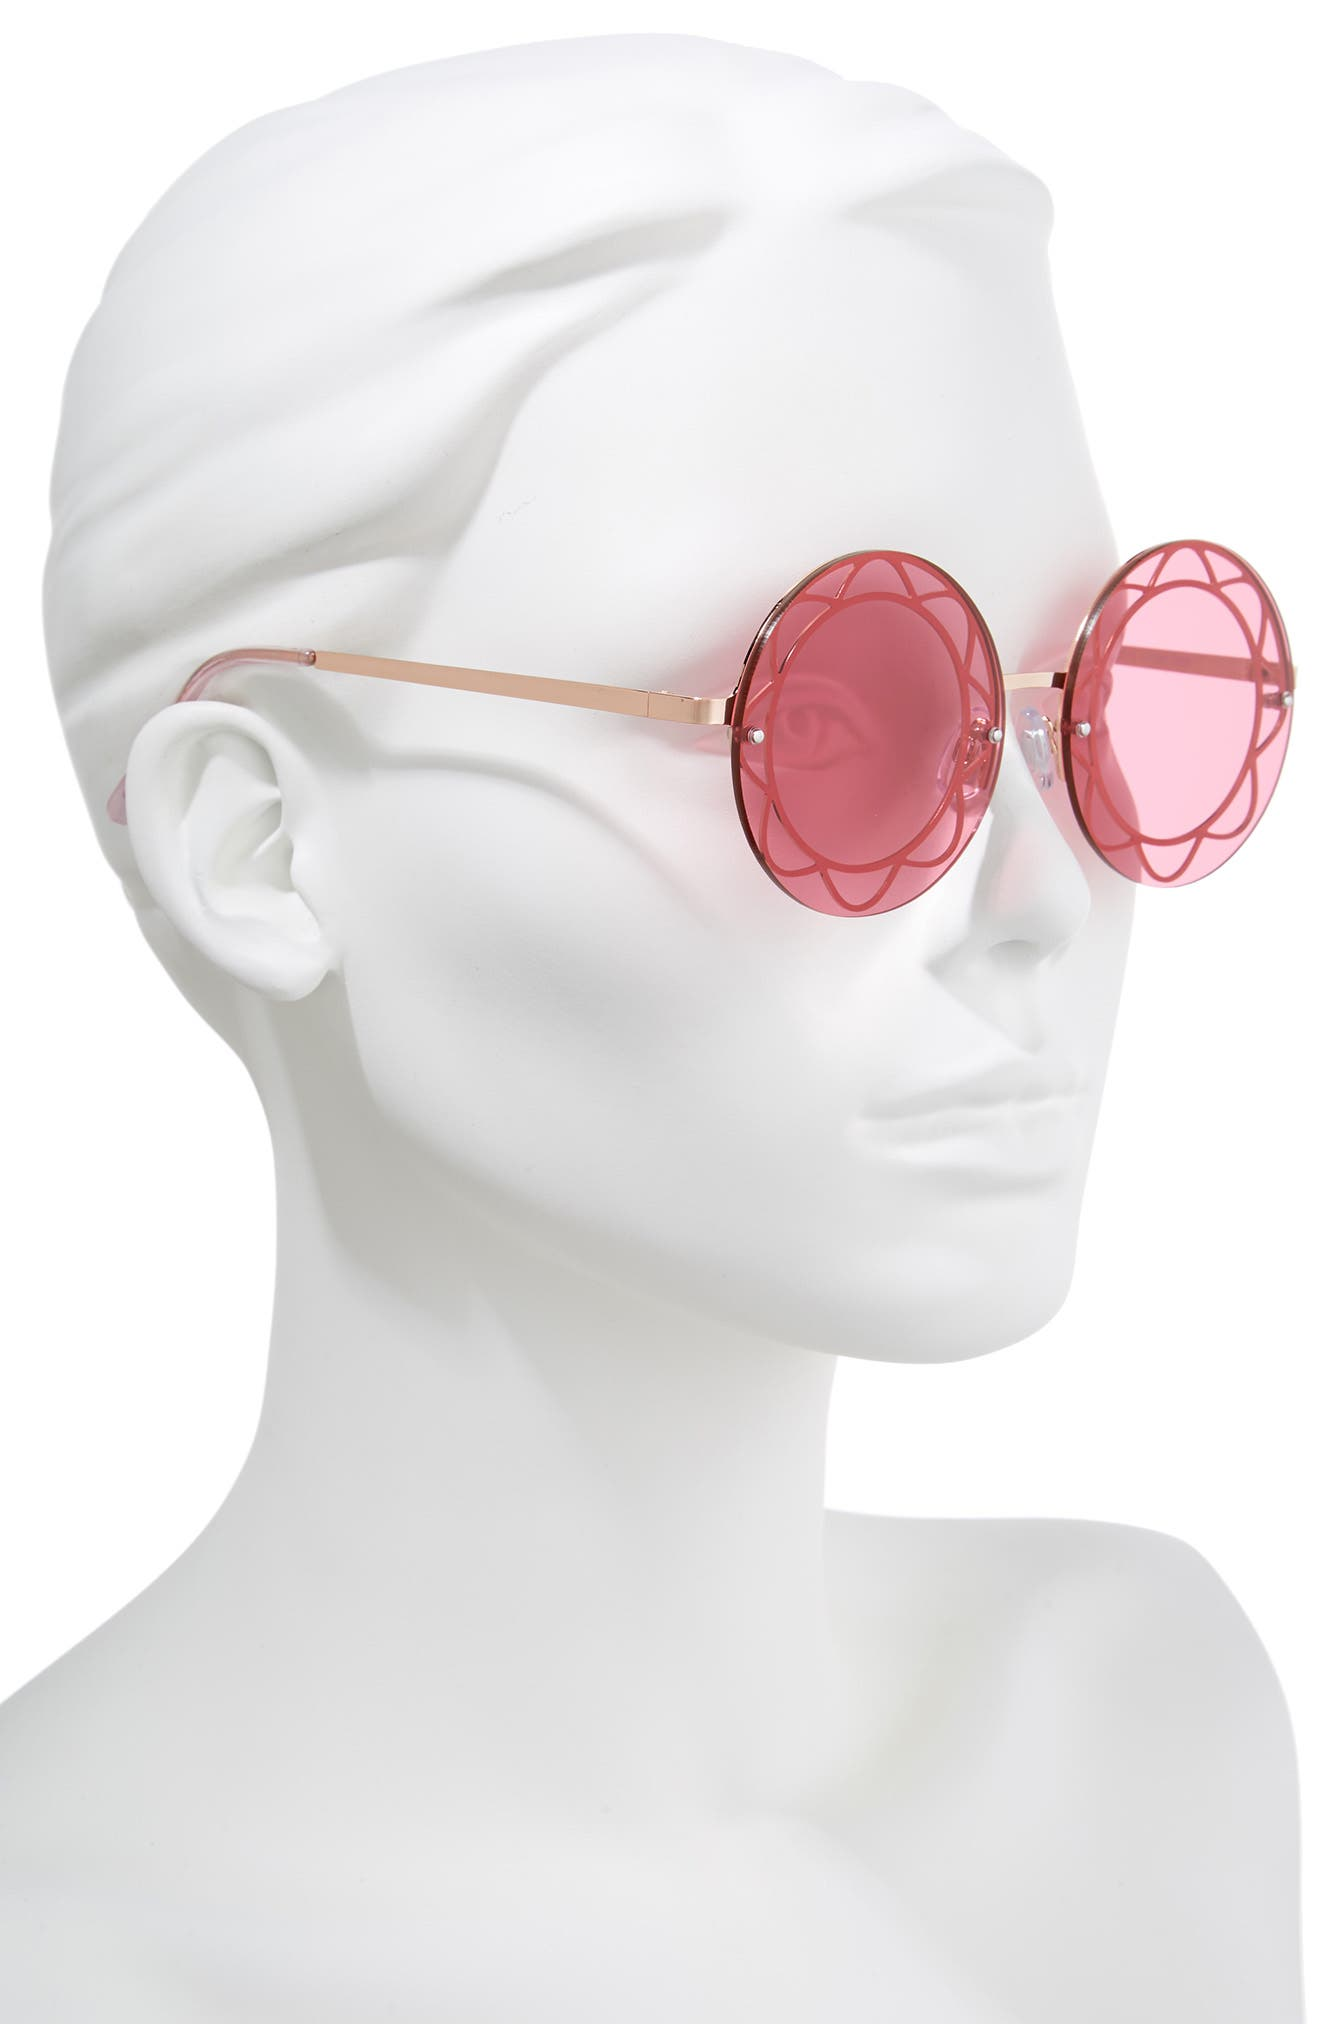 55mm Round Sunglasses,                             Alternate thumbnail 2, color,                             Rose Gold/ Red Lens